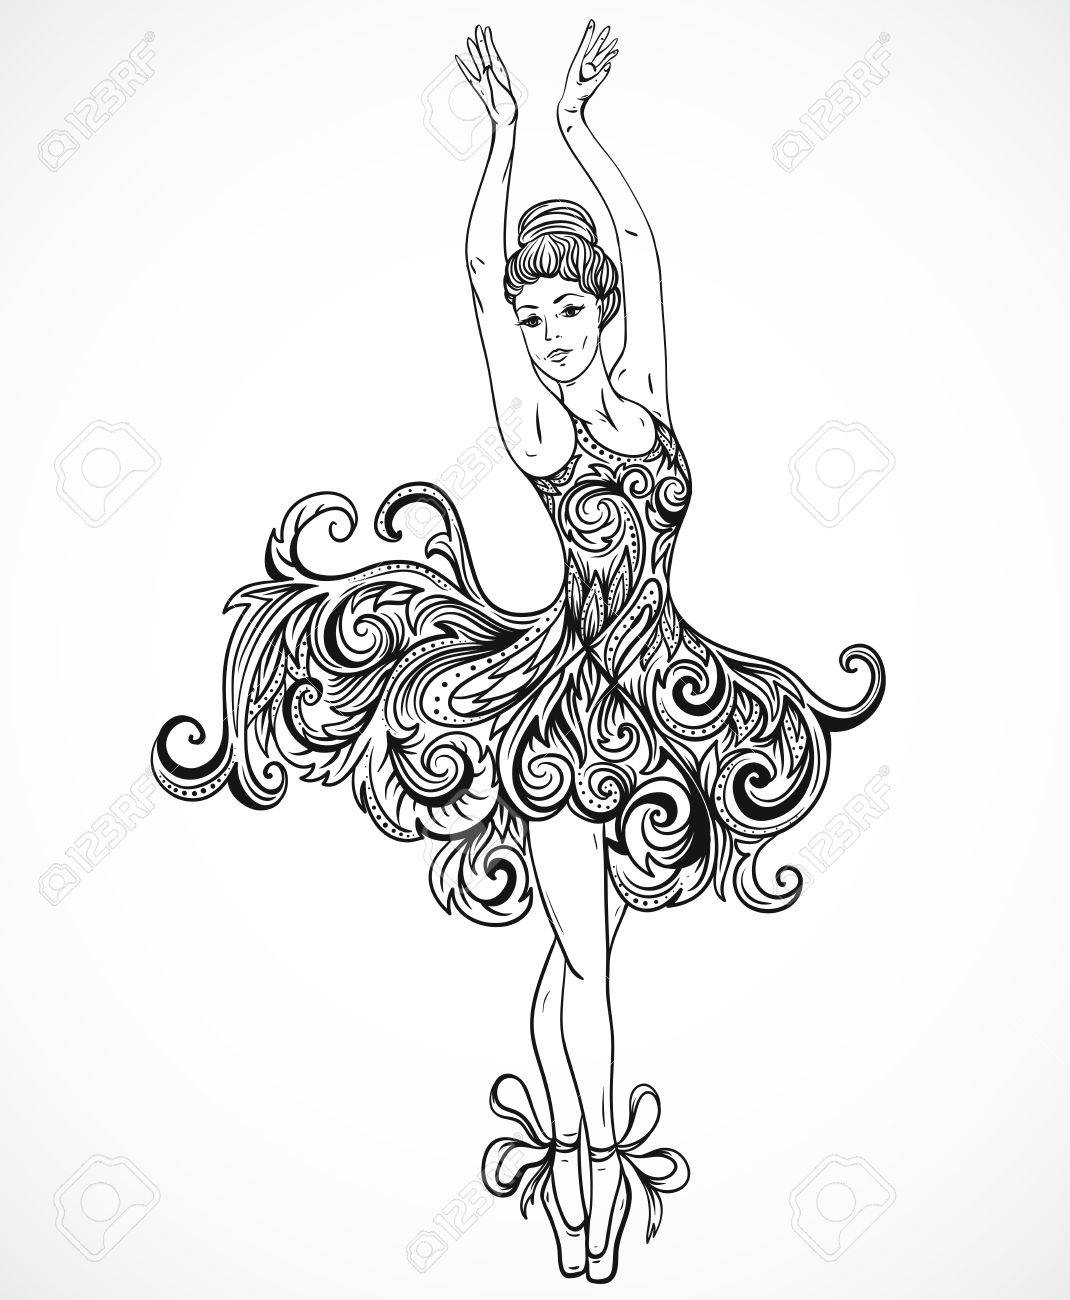 1070x1300 Ballerina With Floral Ornament Dress. Vintage Black And White